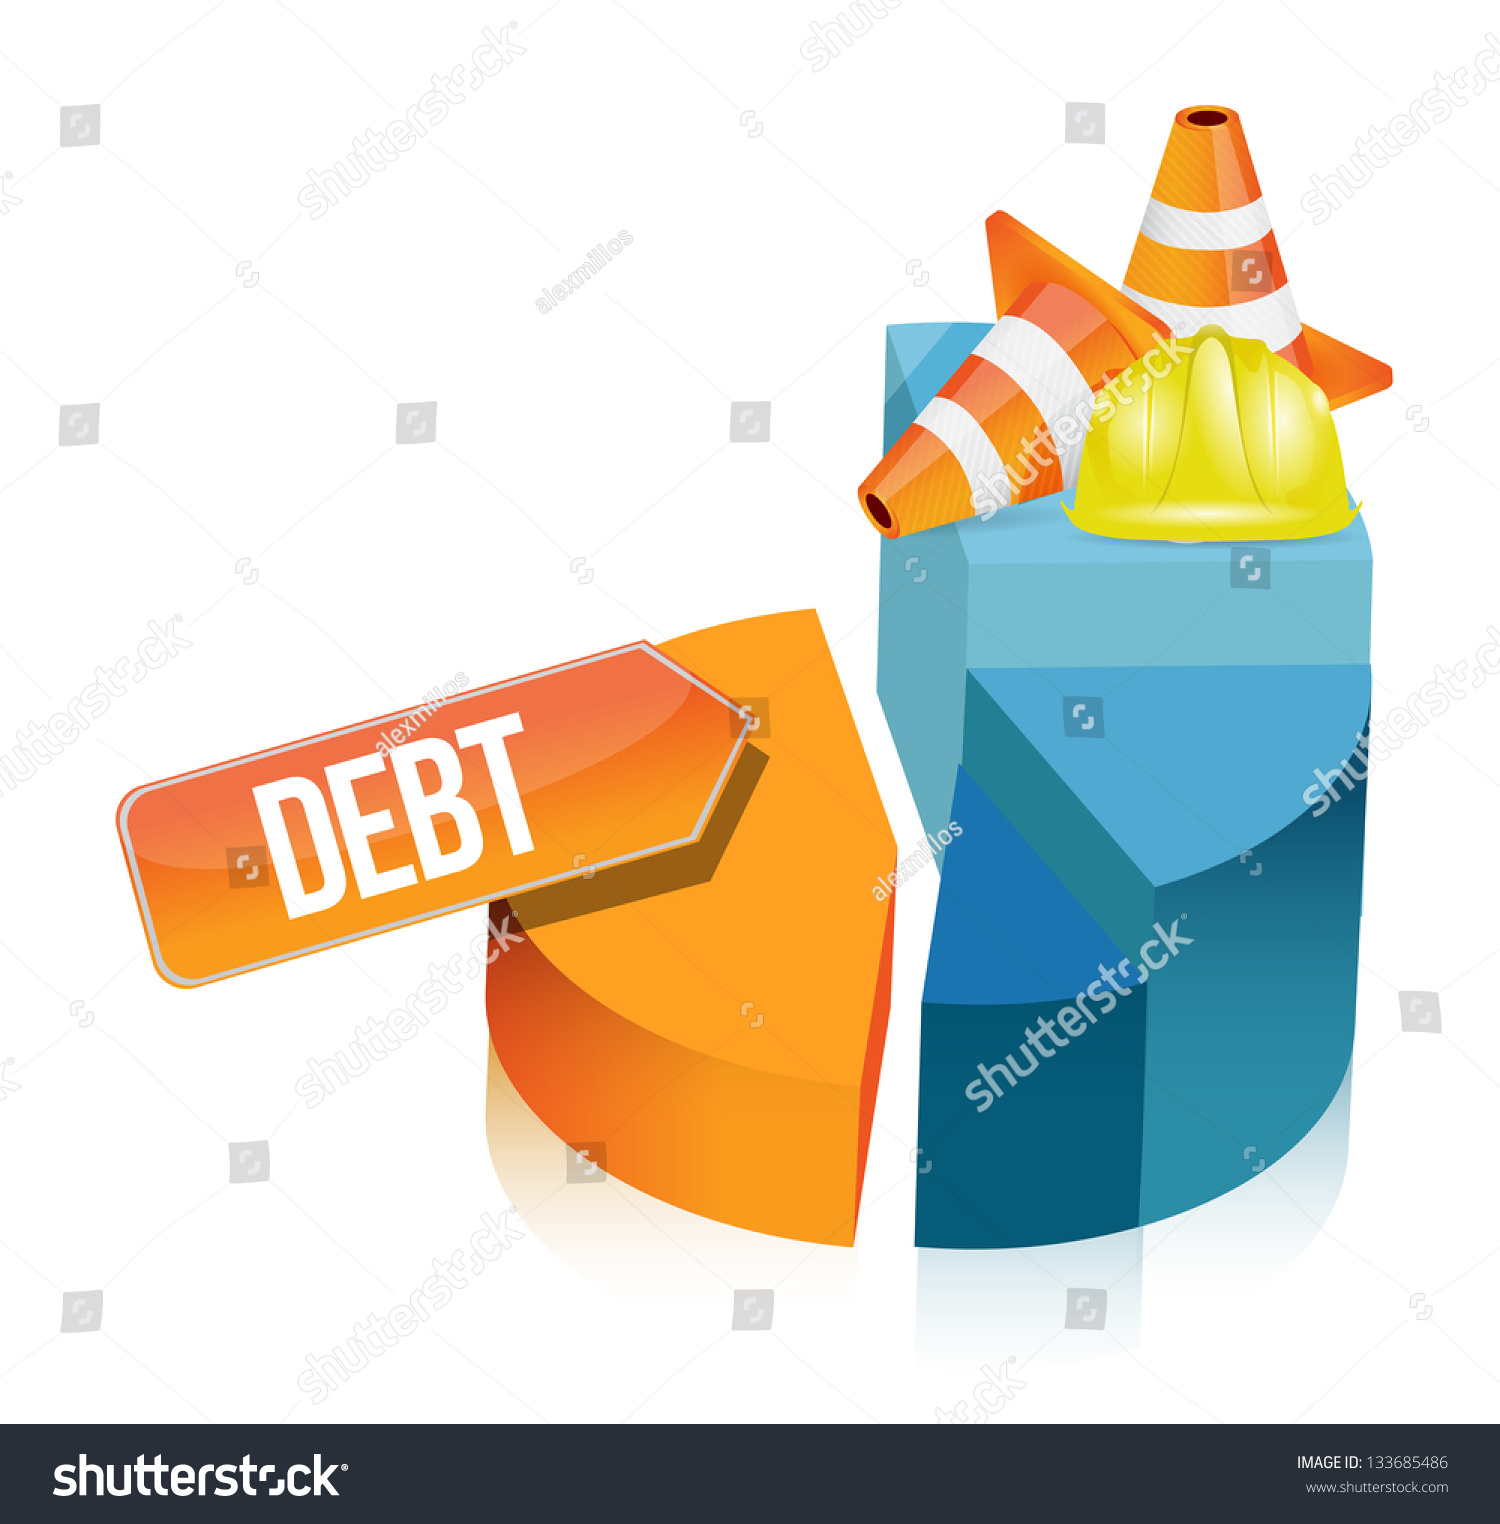 Where do your tax dollars go pie chart image collections free where do your tax dollars go pie chart gallery free any chart tax dollar pie chart nvjuhfo Gallery